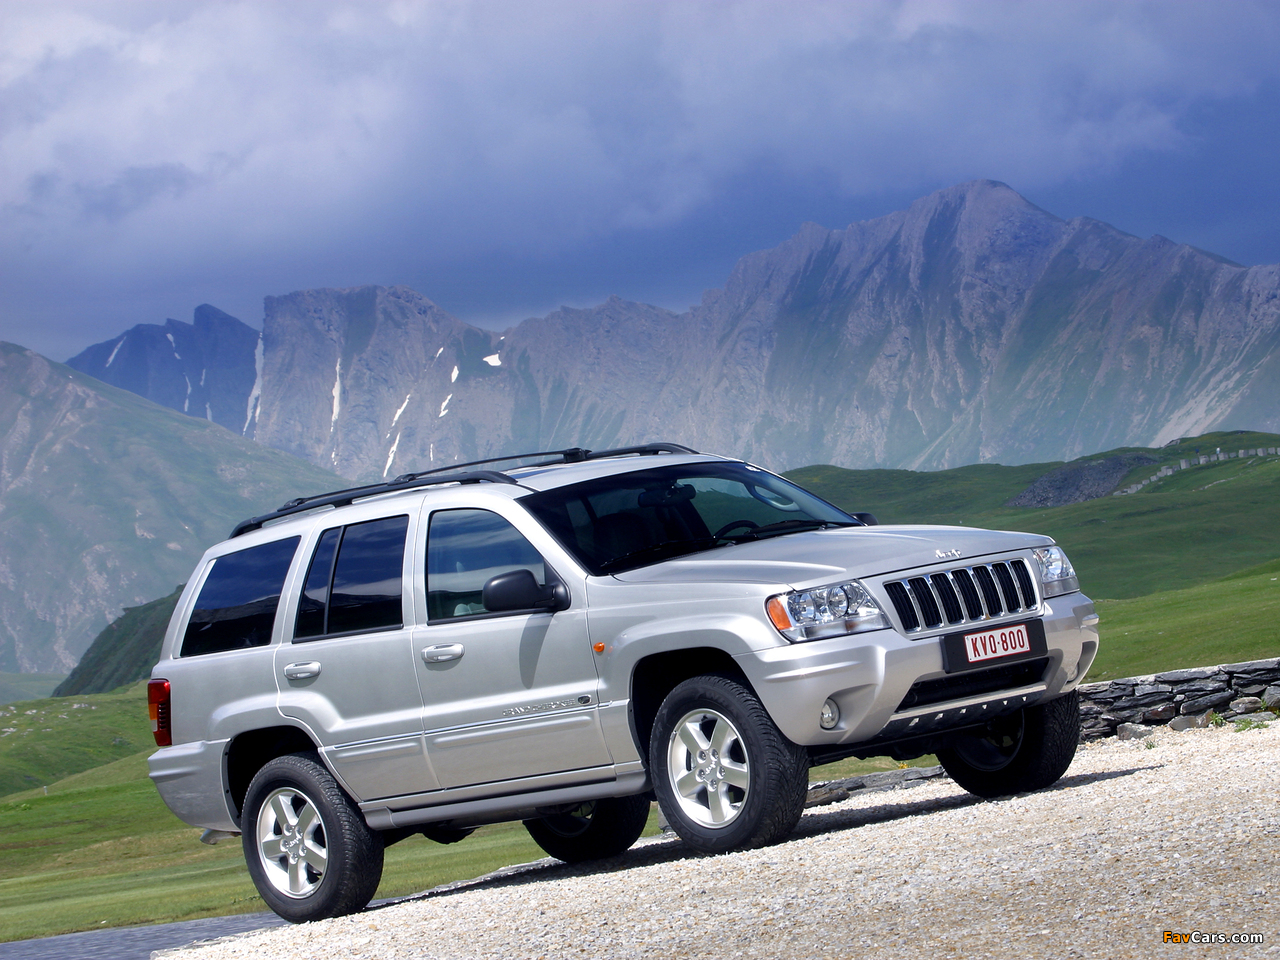 Grand Cherokee Wj Overland >> Images of Jeep Grand Cherokee Overland (WJ) 2002–04 (1280x960)